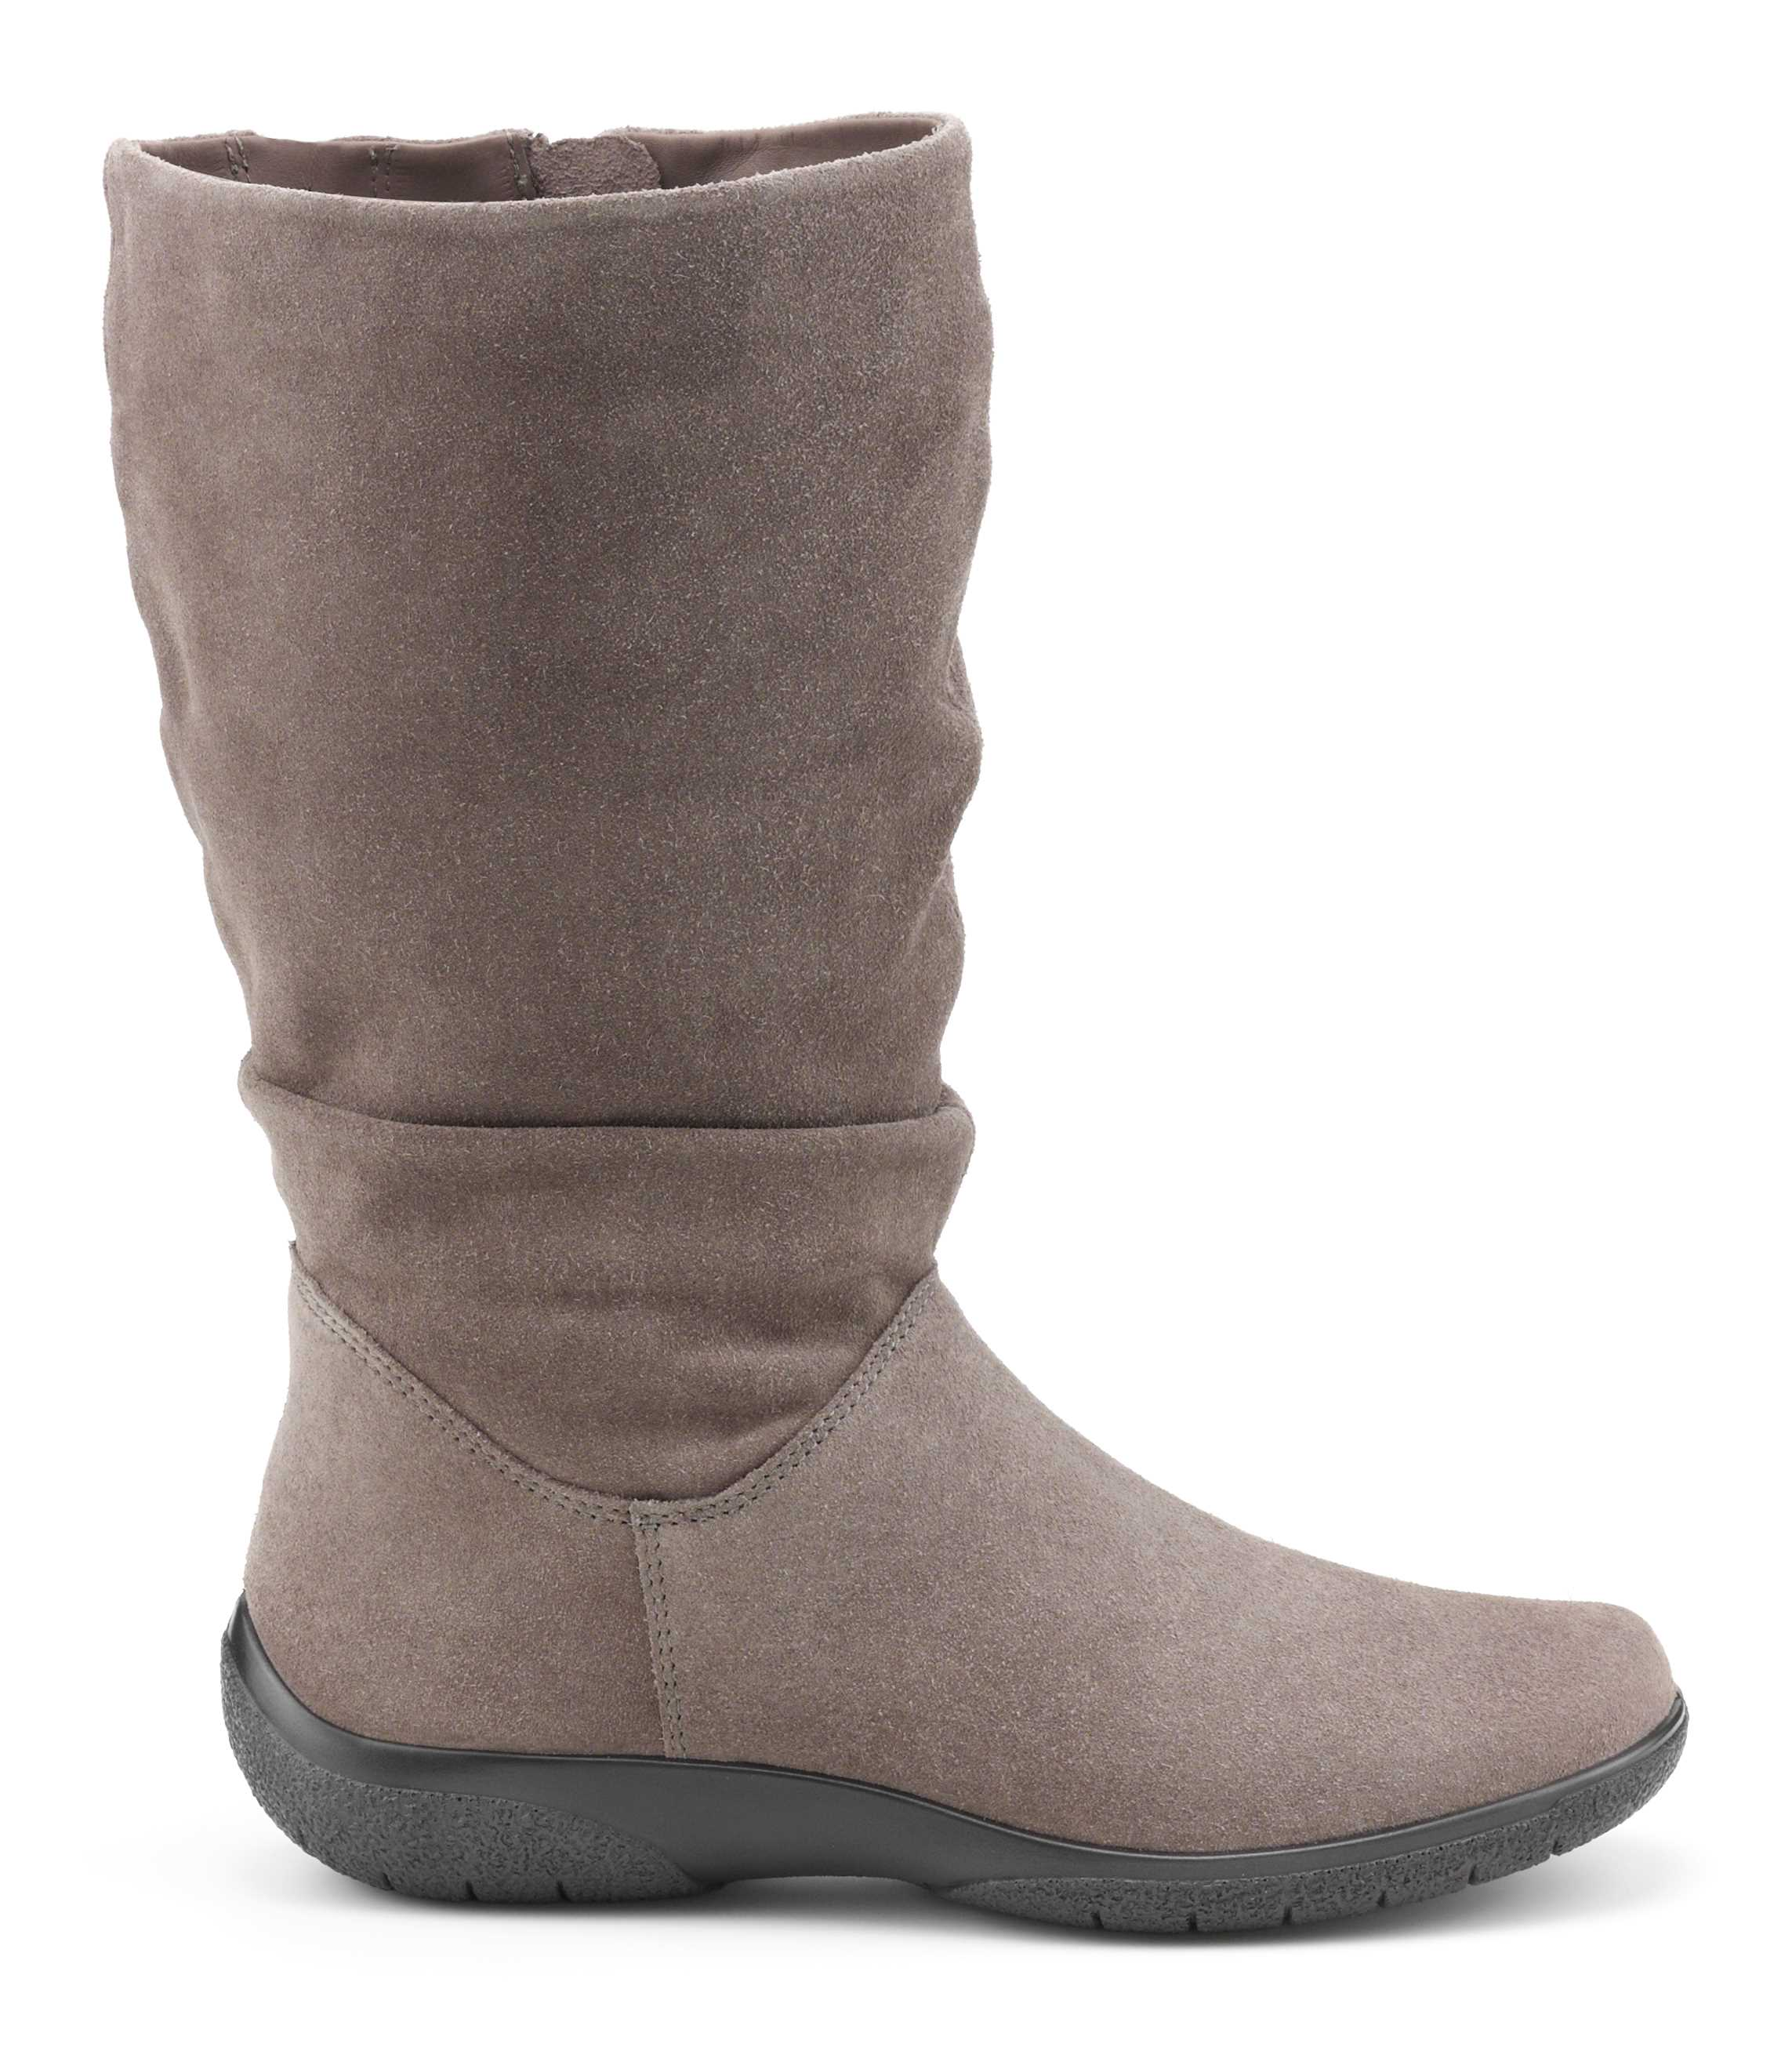 Mystery is a comfortable women's boot from Hotter